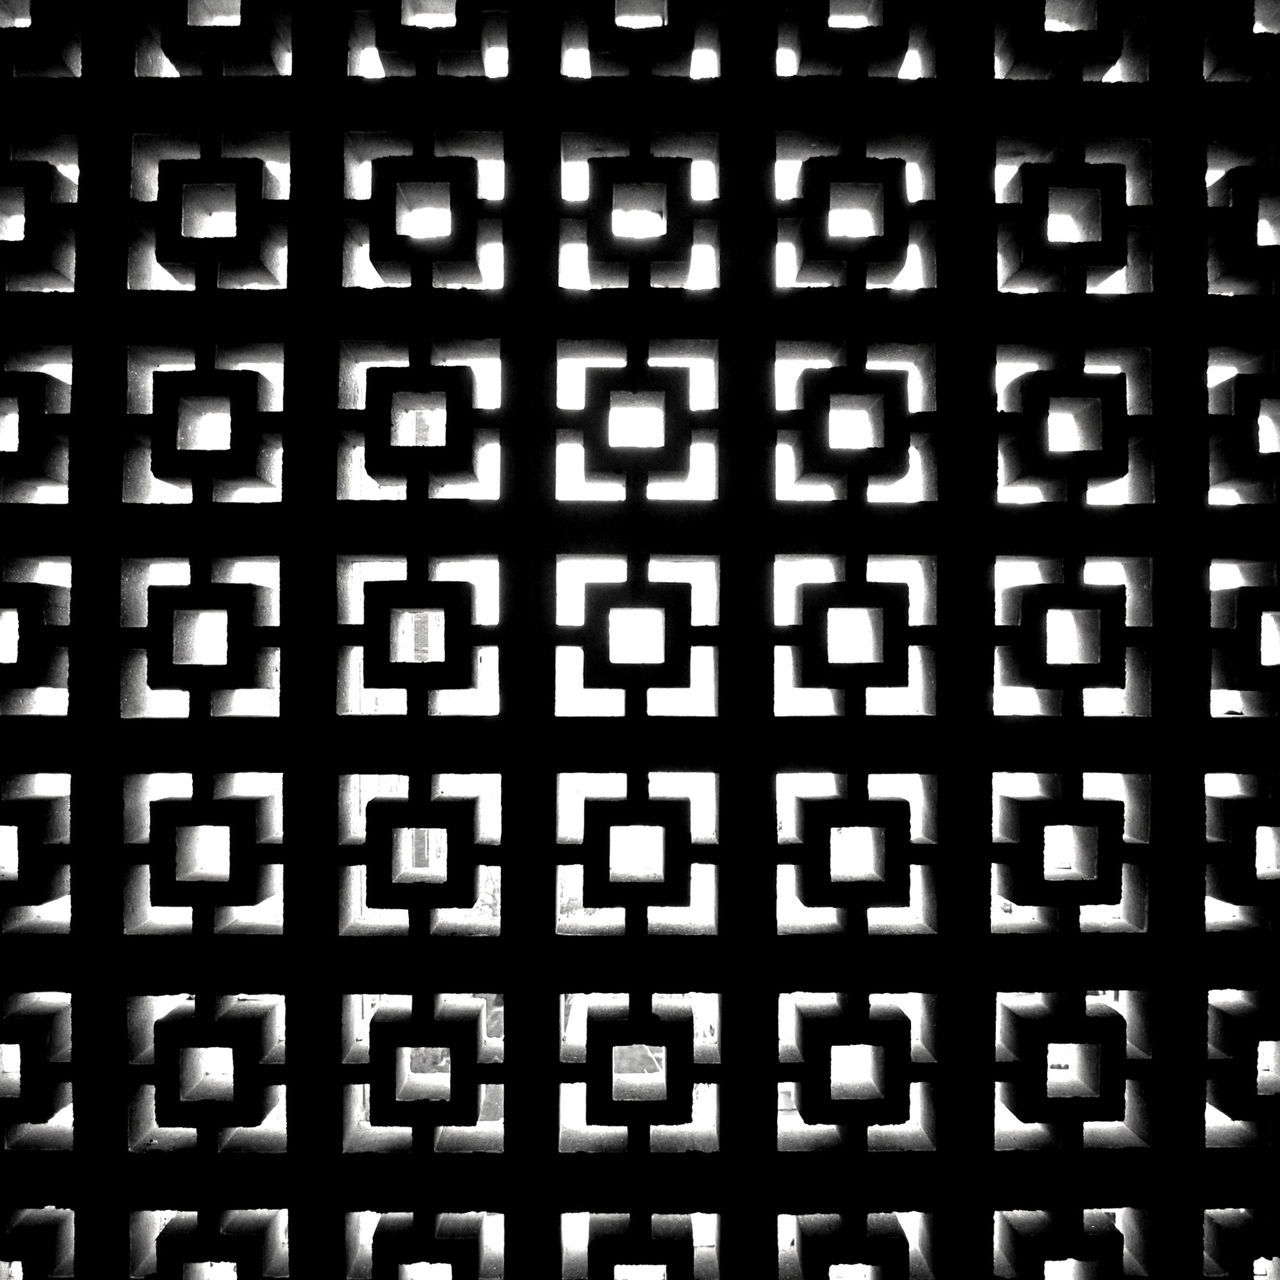 Abstract Backgrounds Blackandwhite Close-up Contrast Day Full Frame Geometric Shape Geometry Metal Grate No People Outdoors Pattern Pixelated Repetition Seamless Pattern Technology Textured